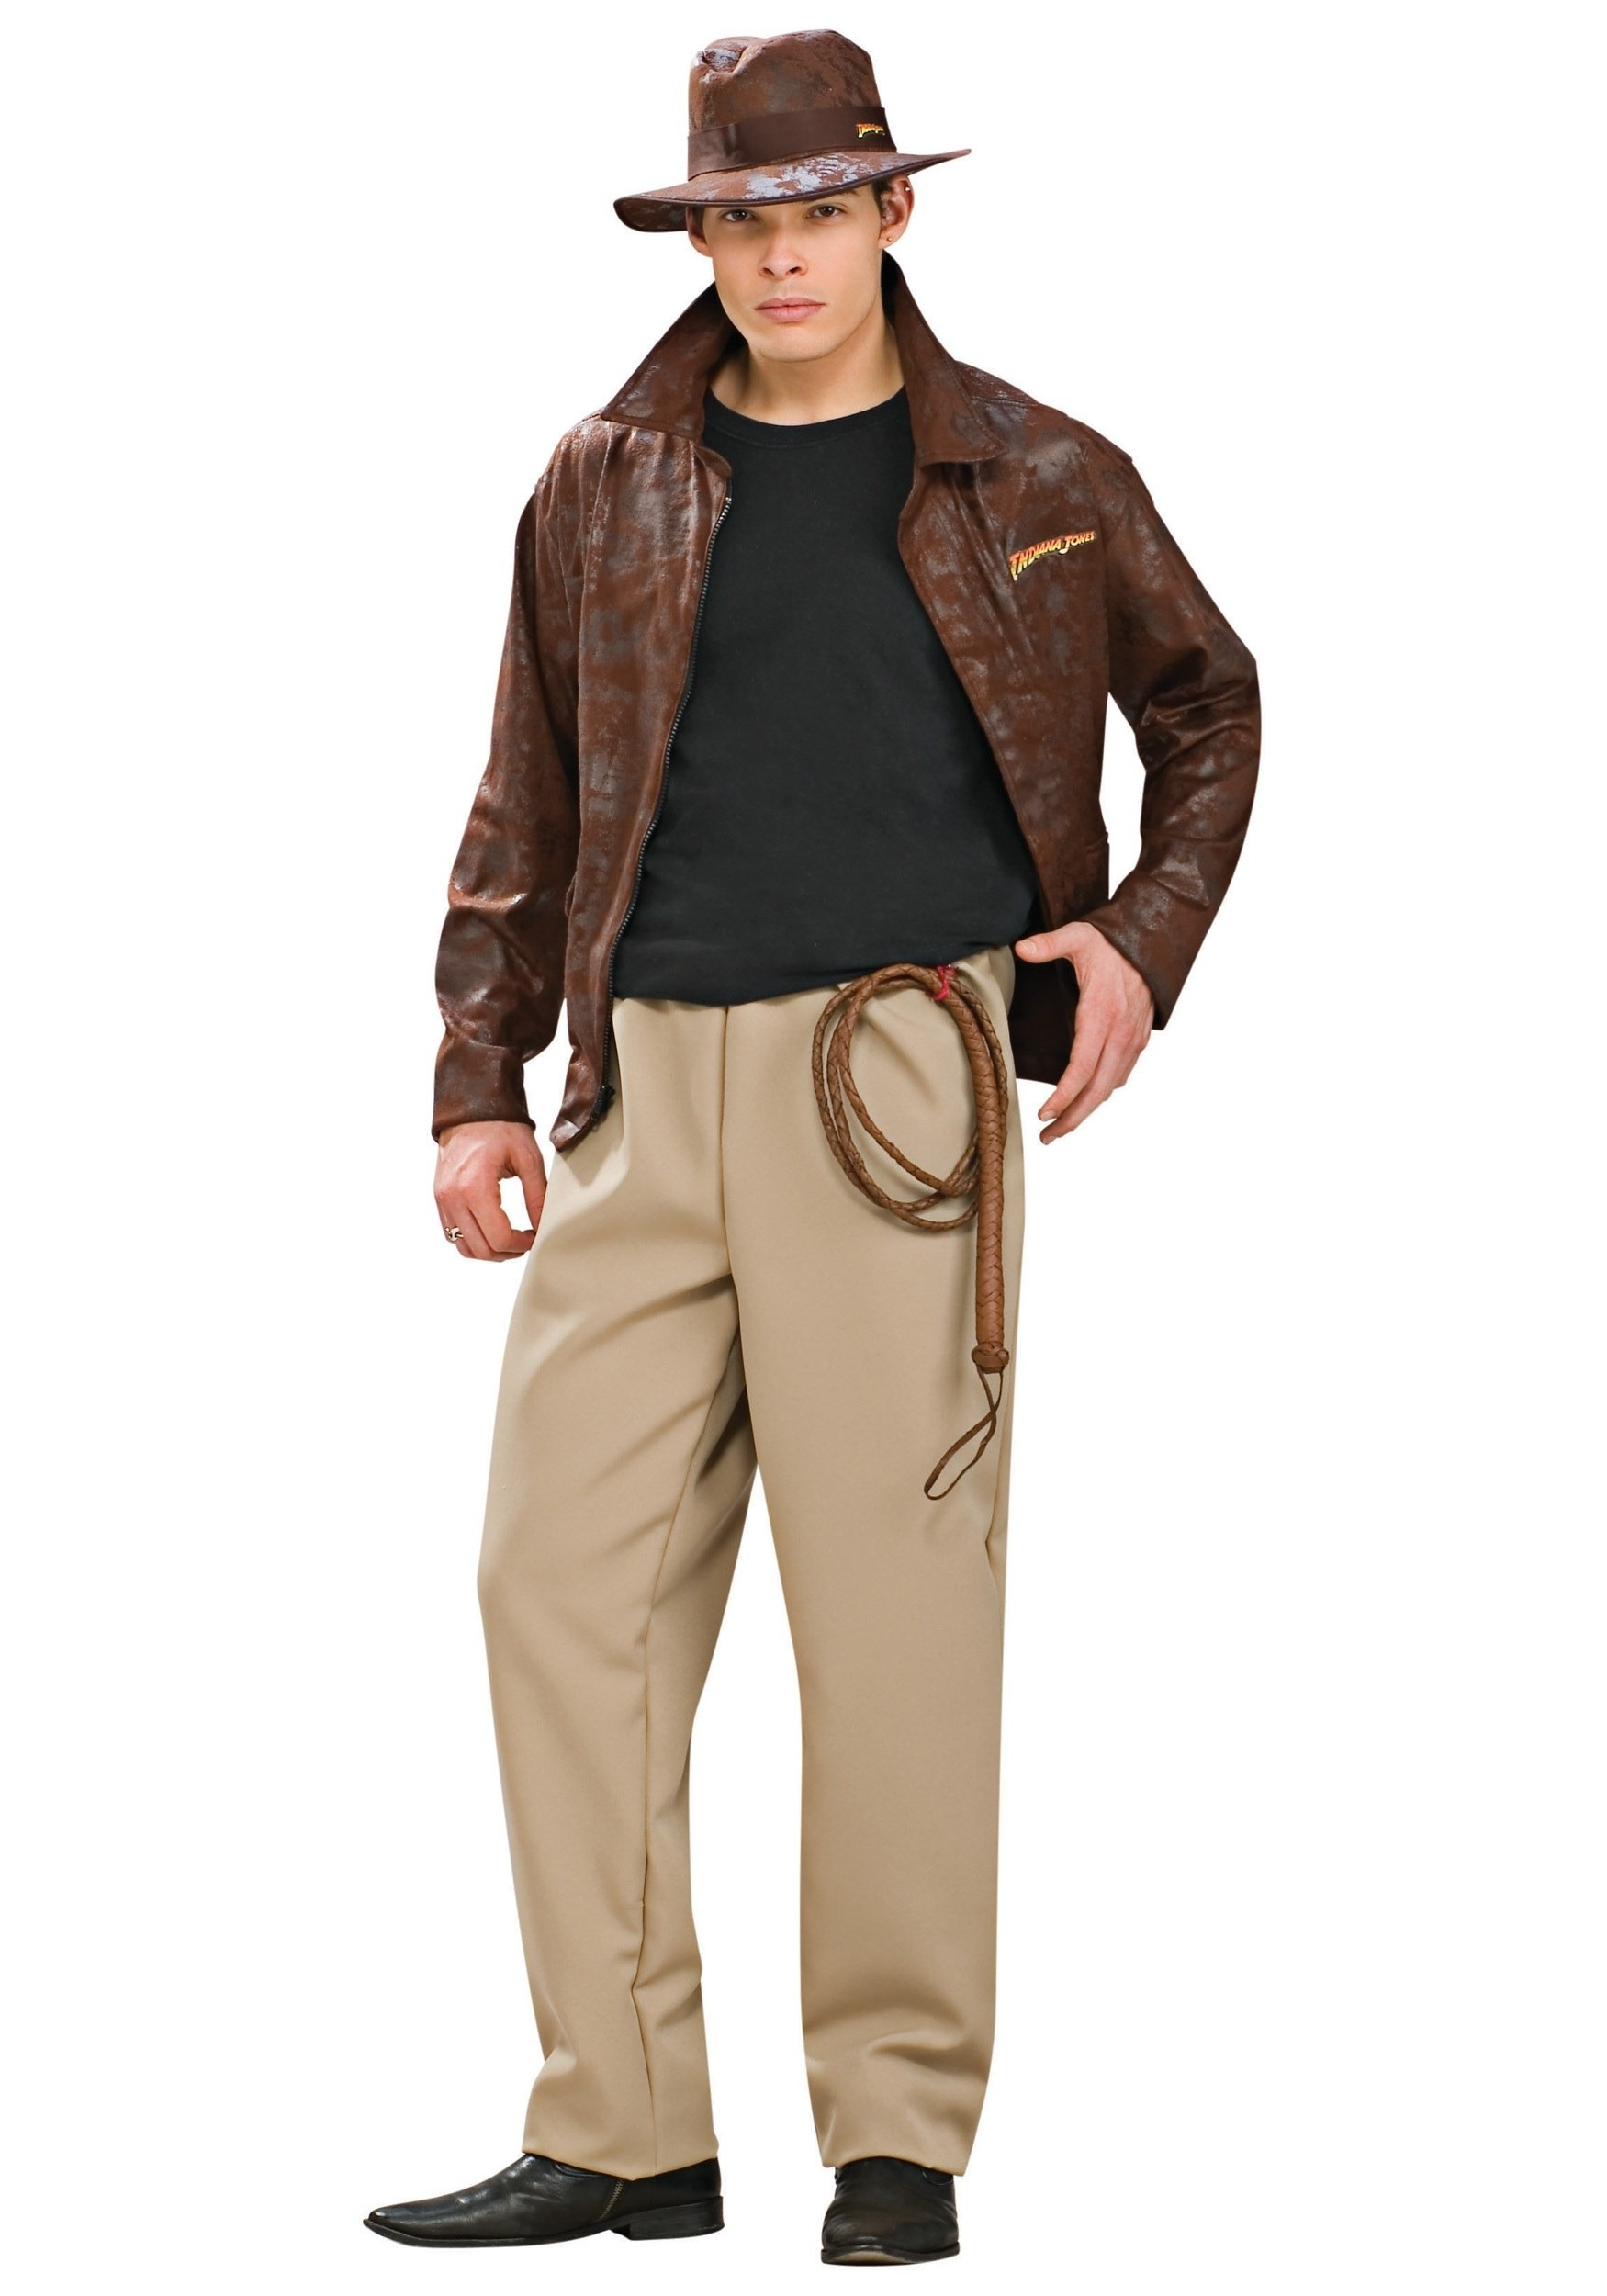 indiana jones outfit for adults